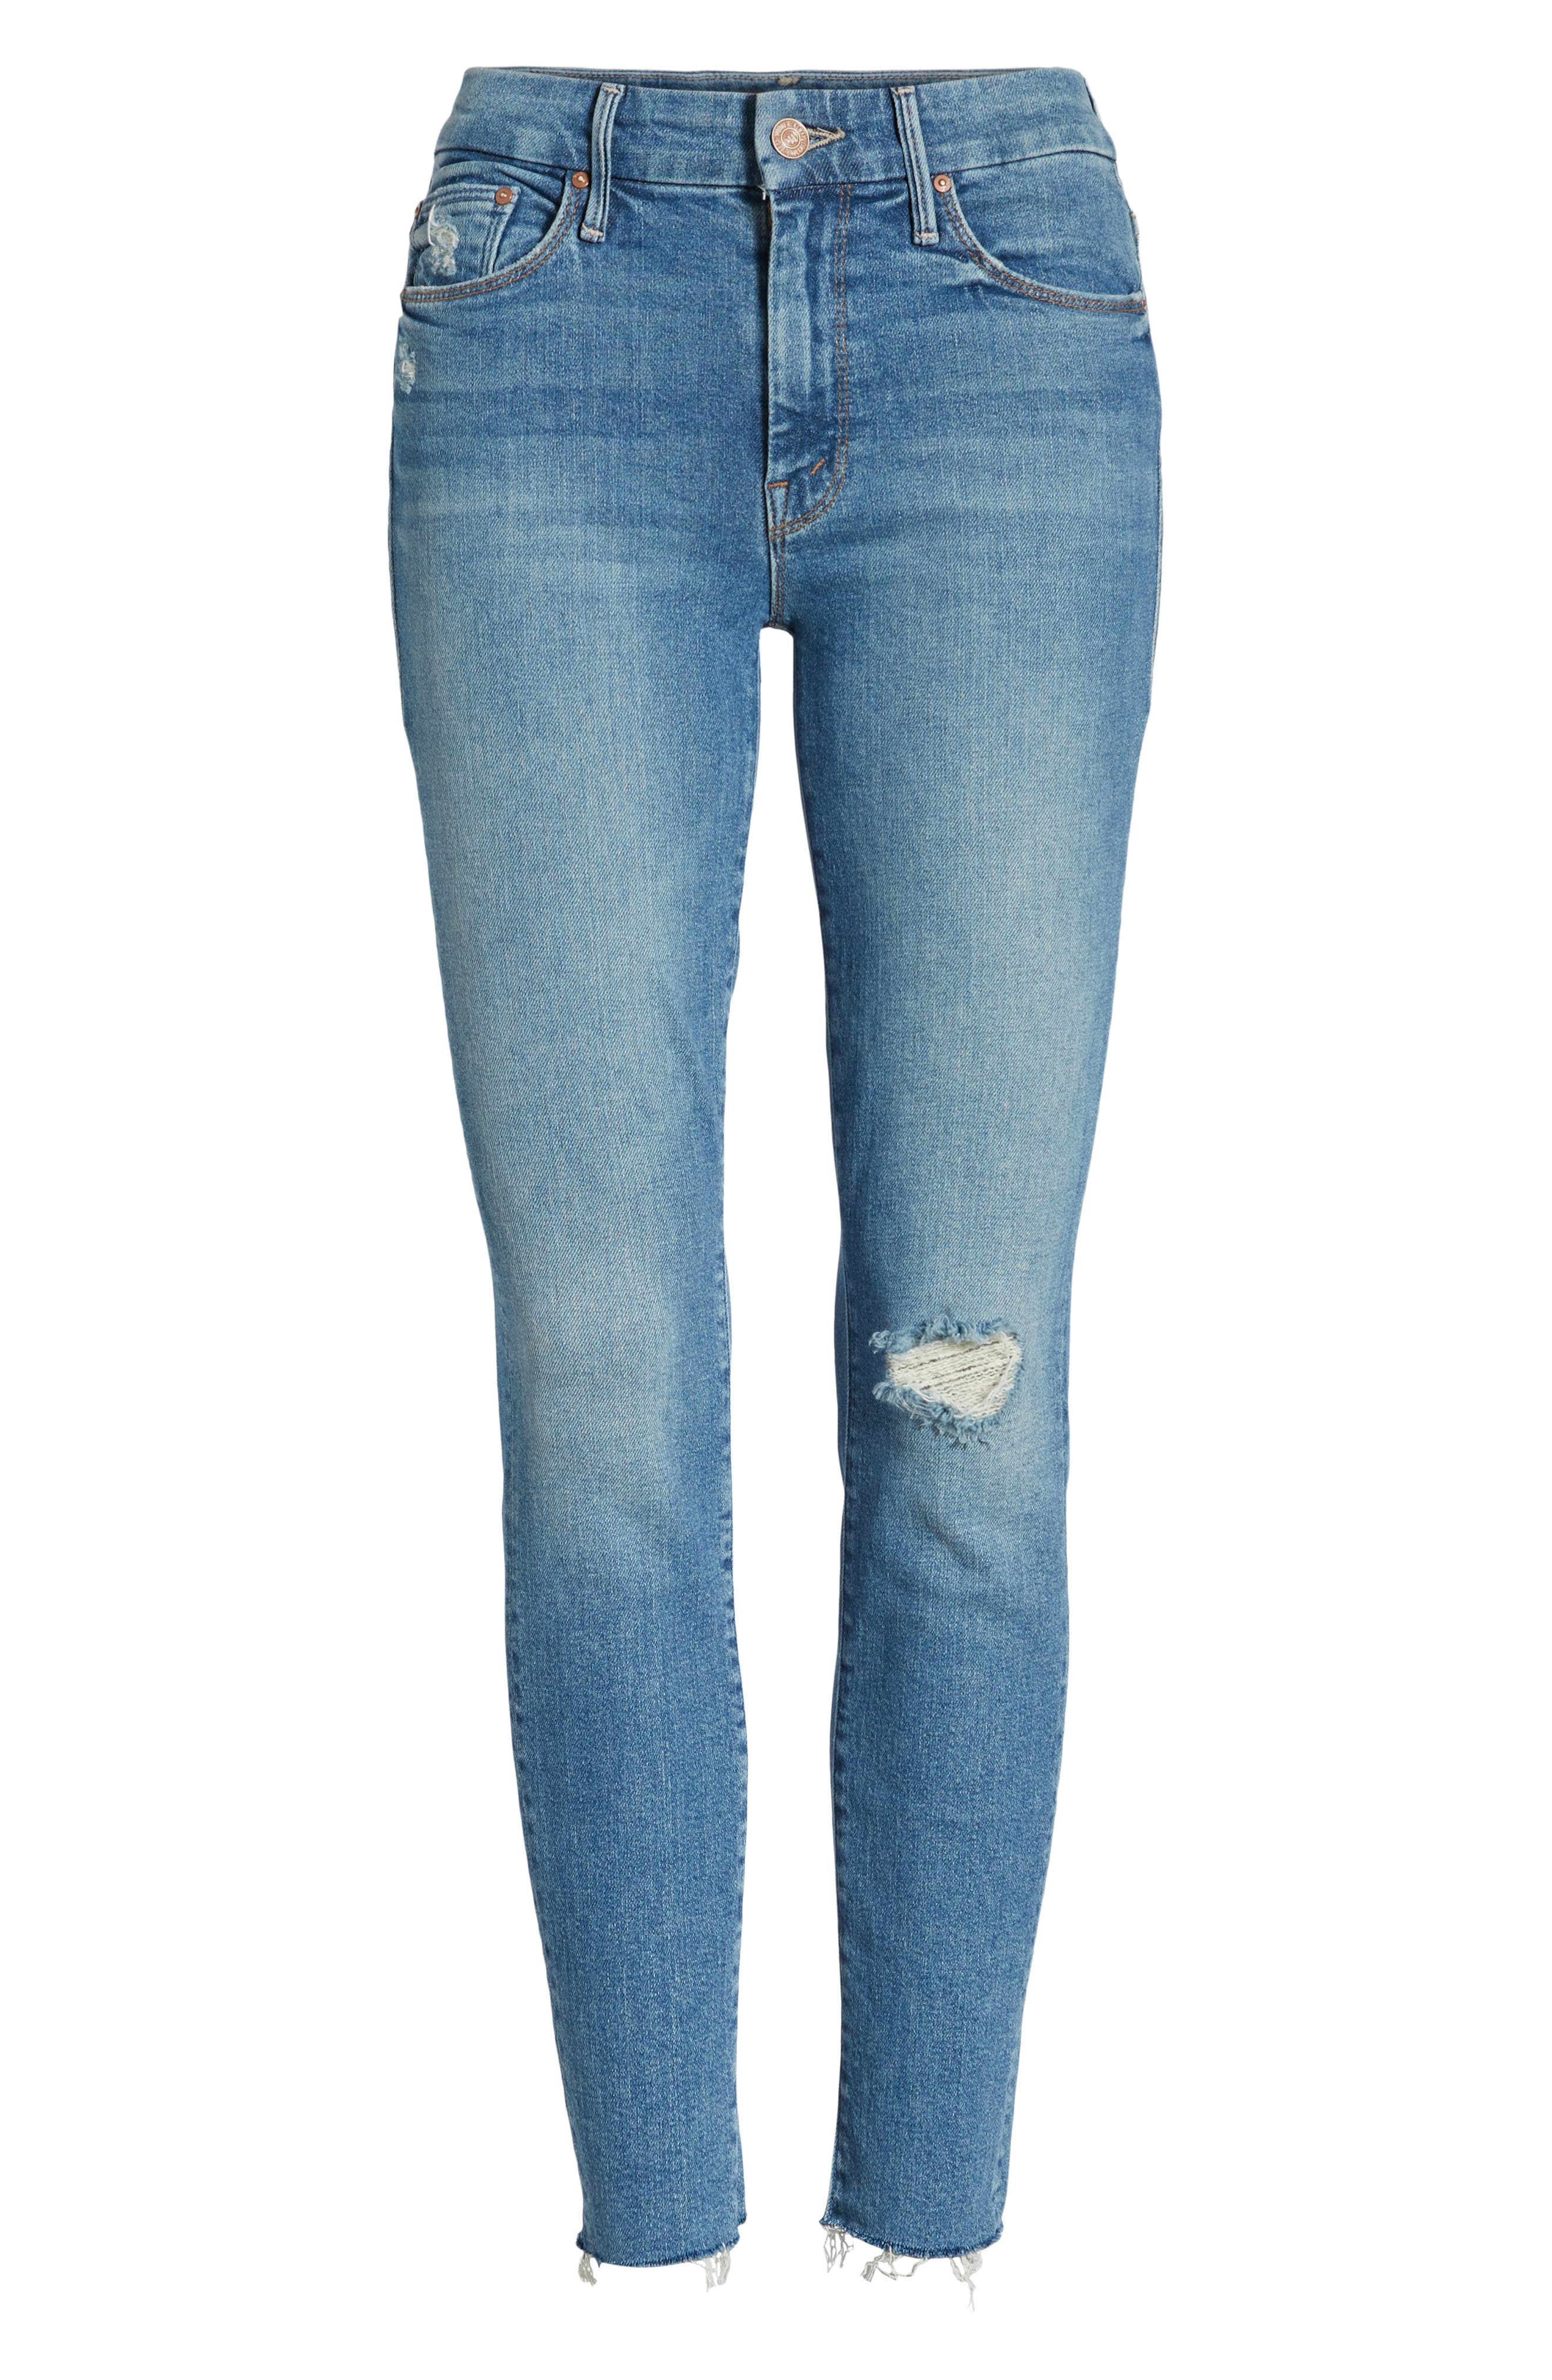 MOTHER, The Looker Frayed Ankle Skinny Jeans, Alternate thumbnail 7, color, LOVE GUN